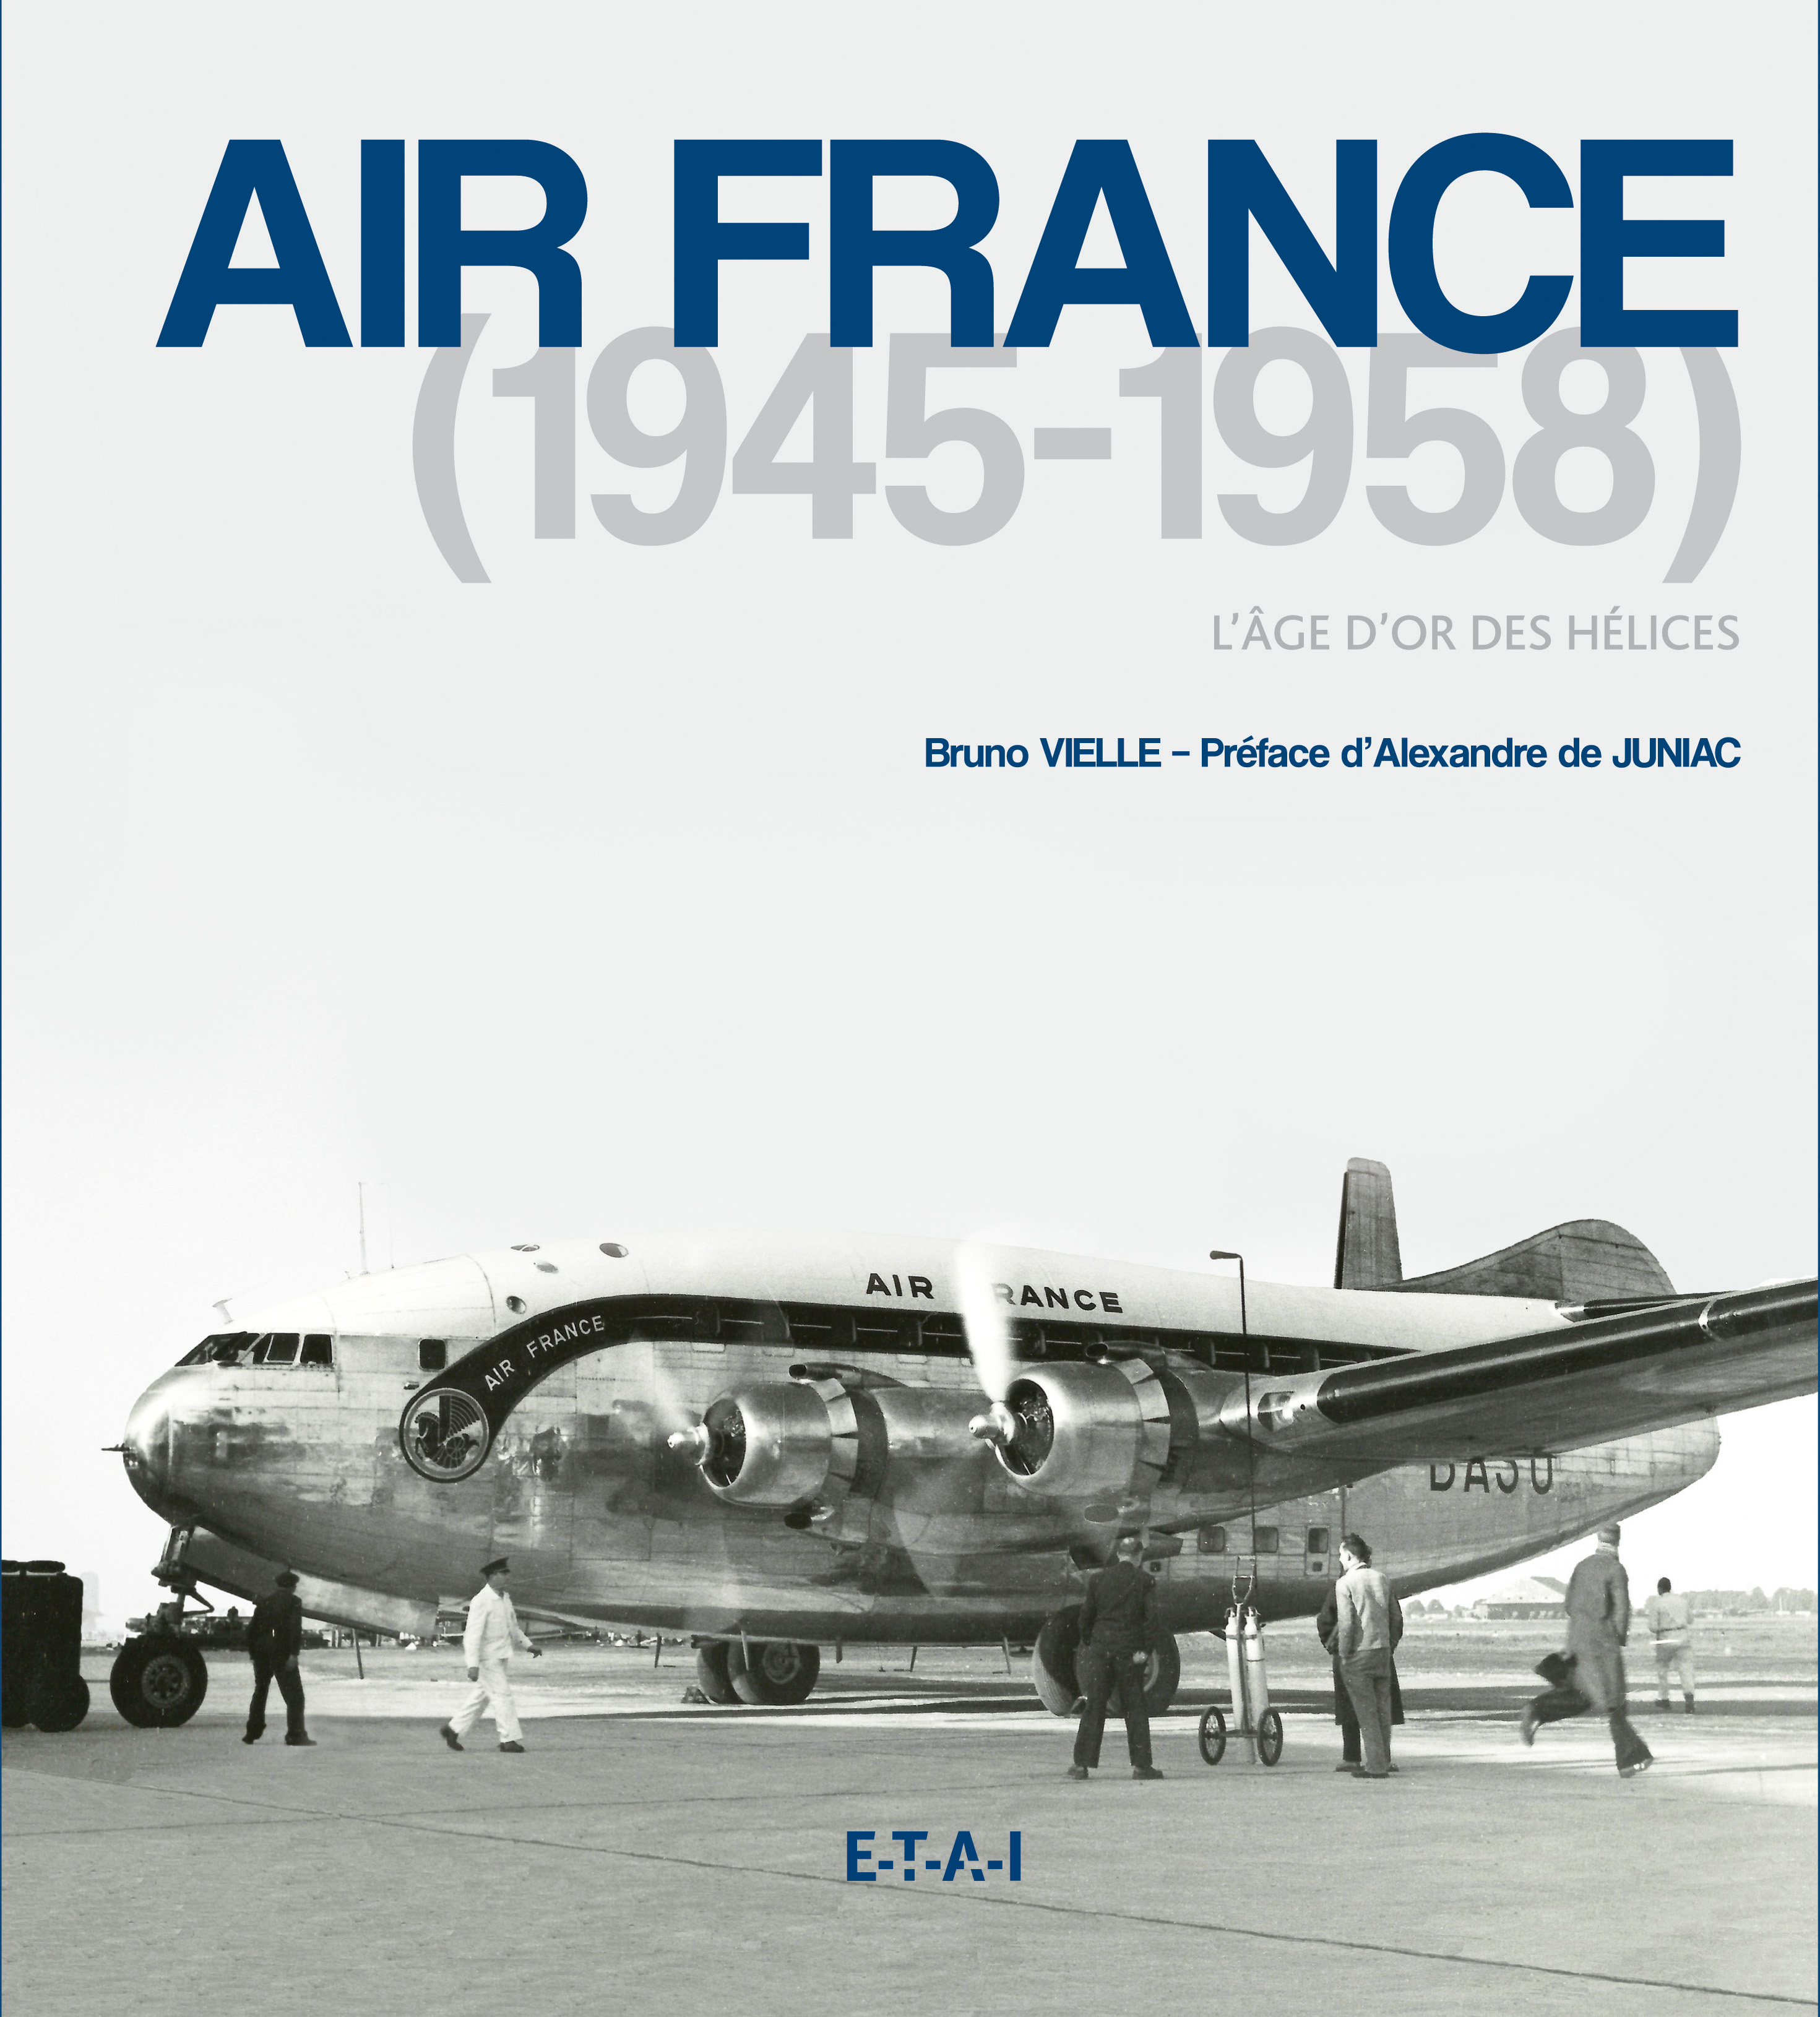 AIR FRANCE 1945-1958, L'AGE D'OR DES HELICES